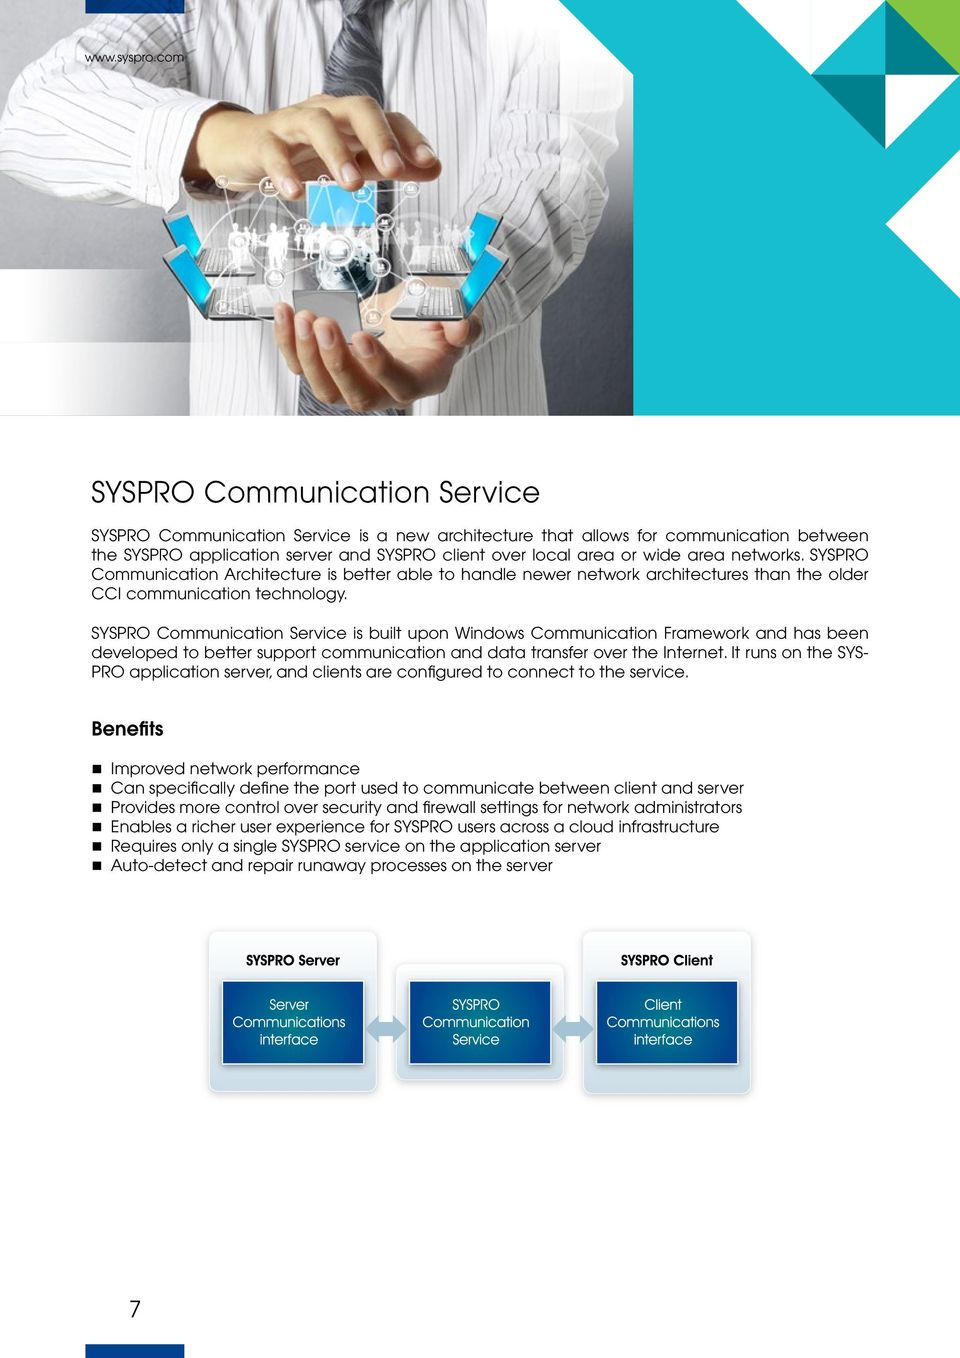 SYSPRO Communication Service is built upon Windows Communication Framework and has been developed to better support communication and data transfer over the Internet.